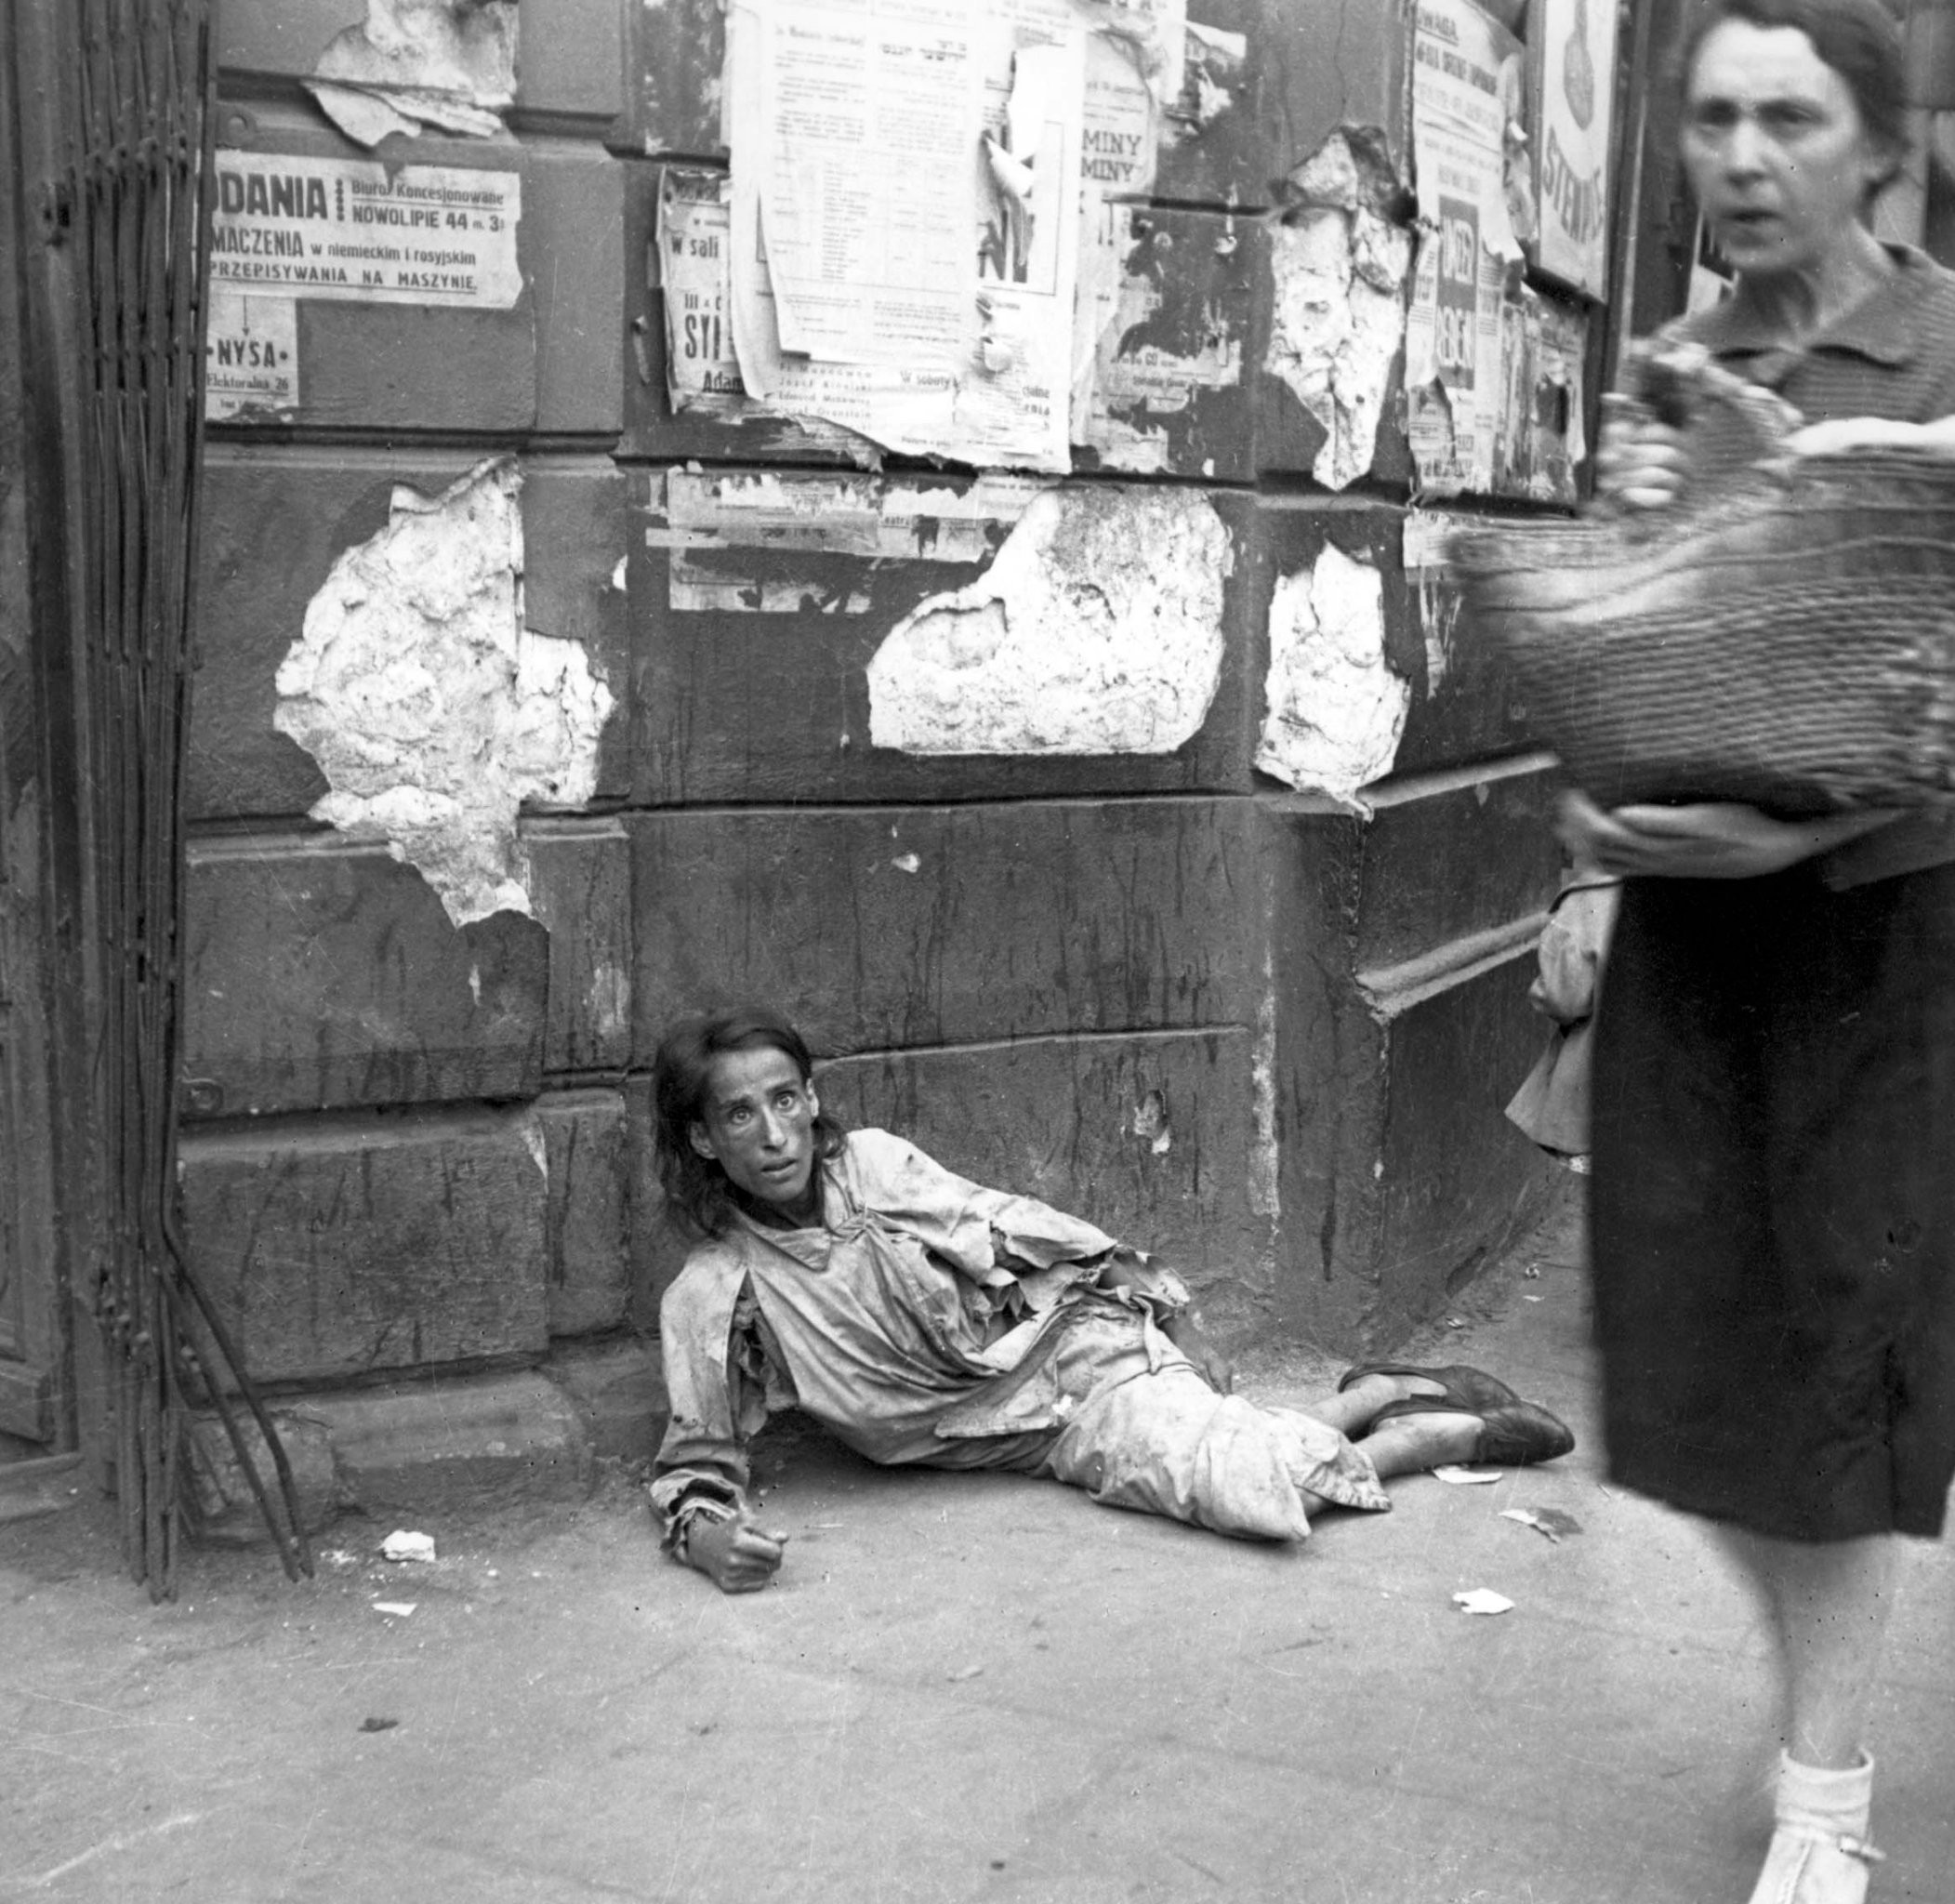 a-woman-lying-on-the-pavement-in-the-warsaw-ghetto-starving-to-death-1941